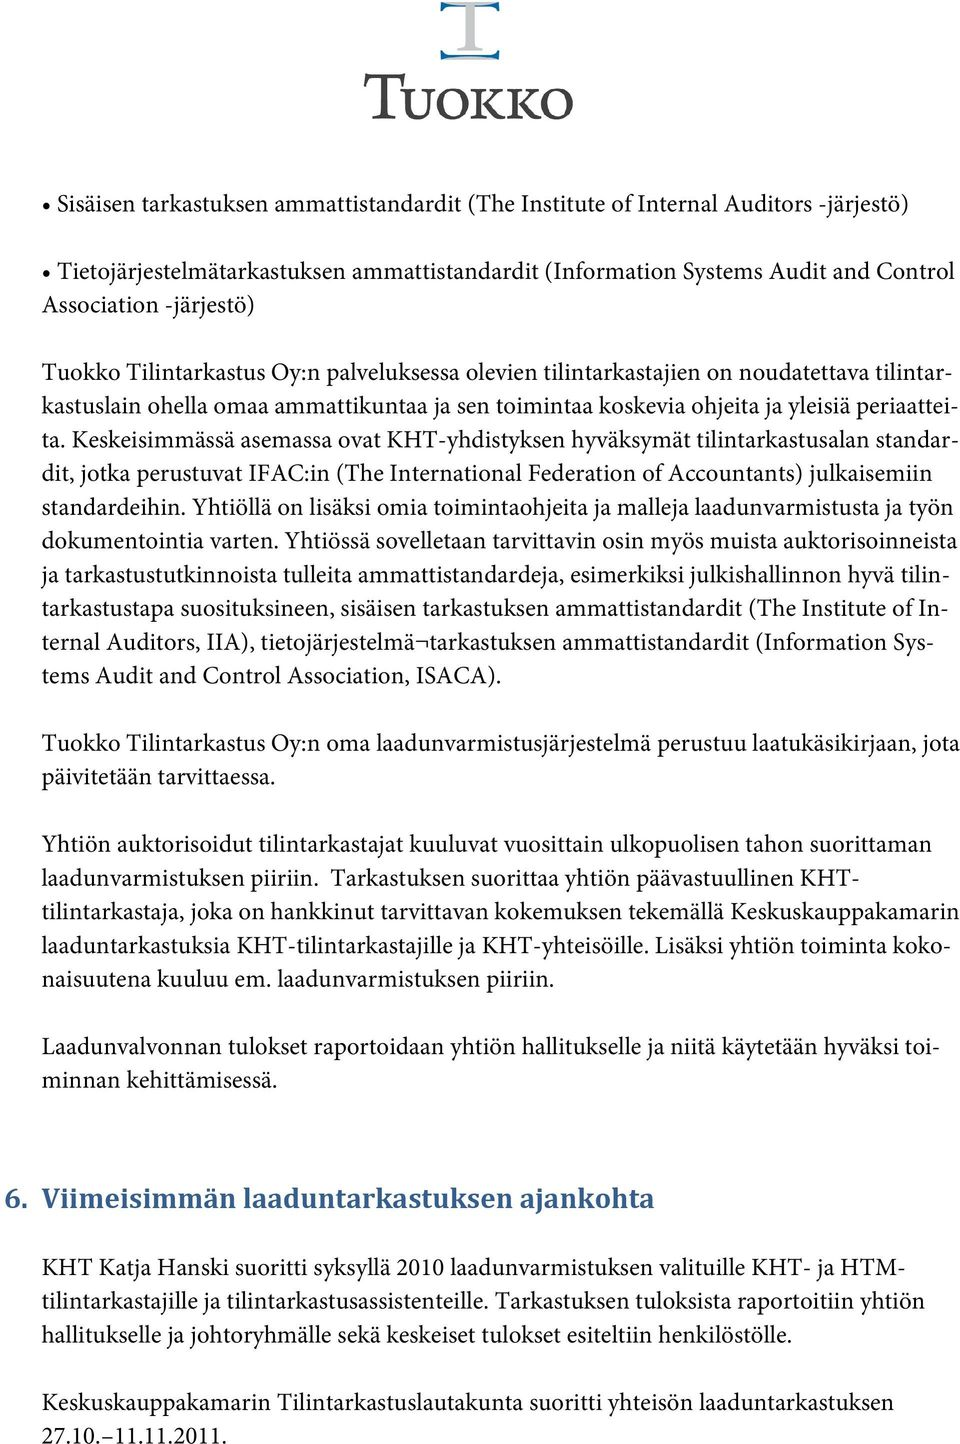 Keskeisimmässä asemassa ovat KHT-yhdistyksen hyväksymät tilintarkastusalan standardit, jotka perustuvat IFAC:in (The International Federation of Accountants) julkaisemiin standardeihin.